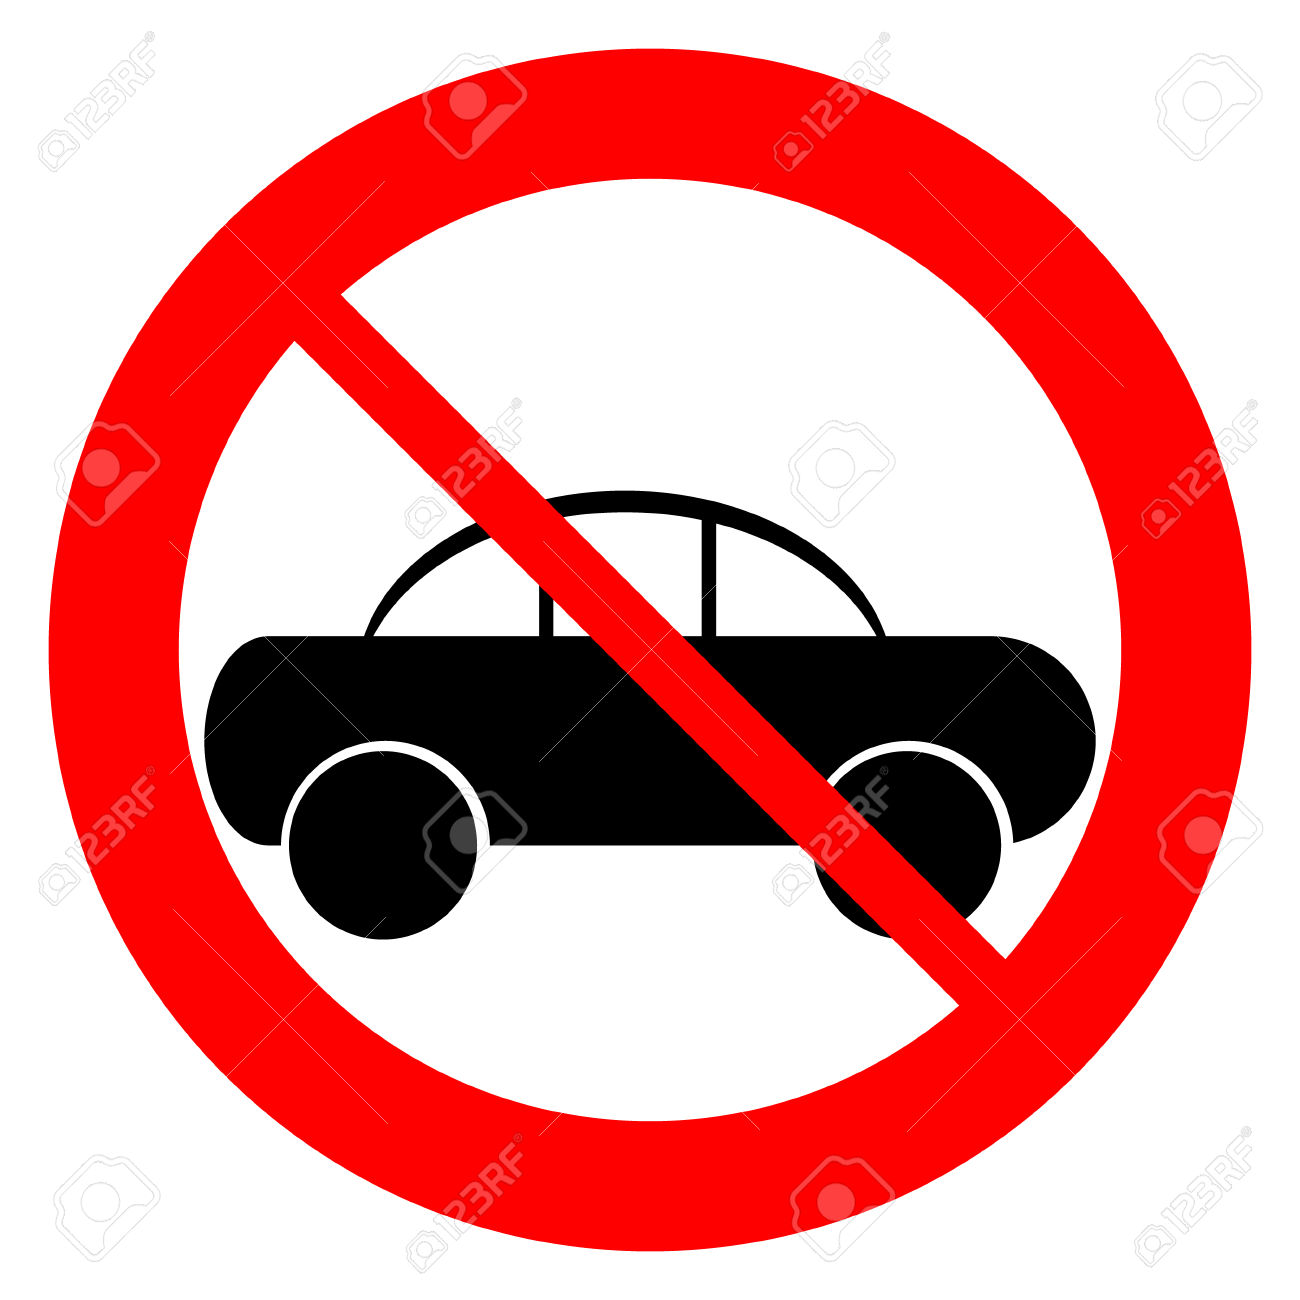 No Parking Sign Icon On White Background Royalty Free Cliparts.